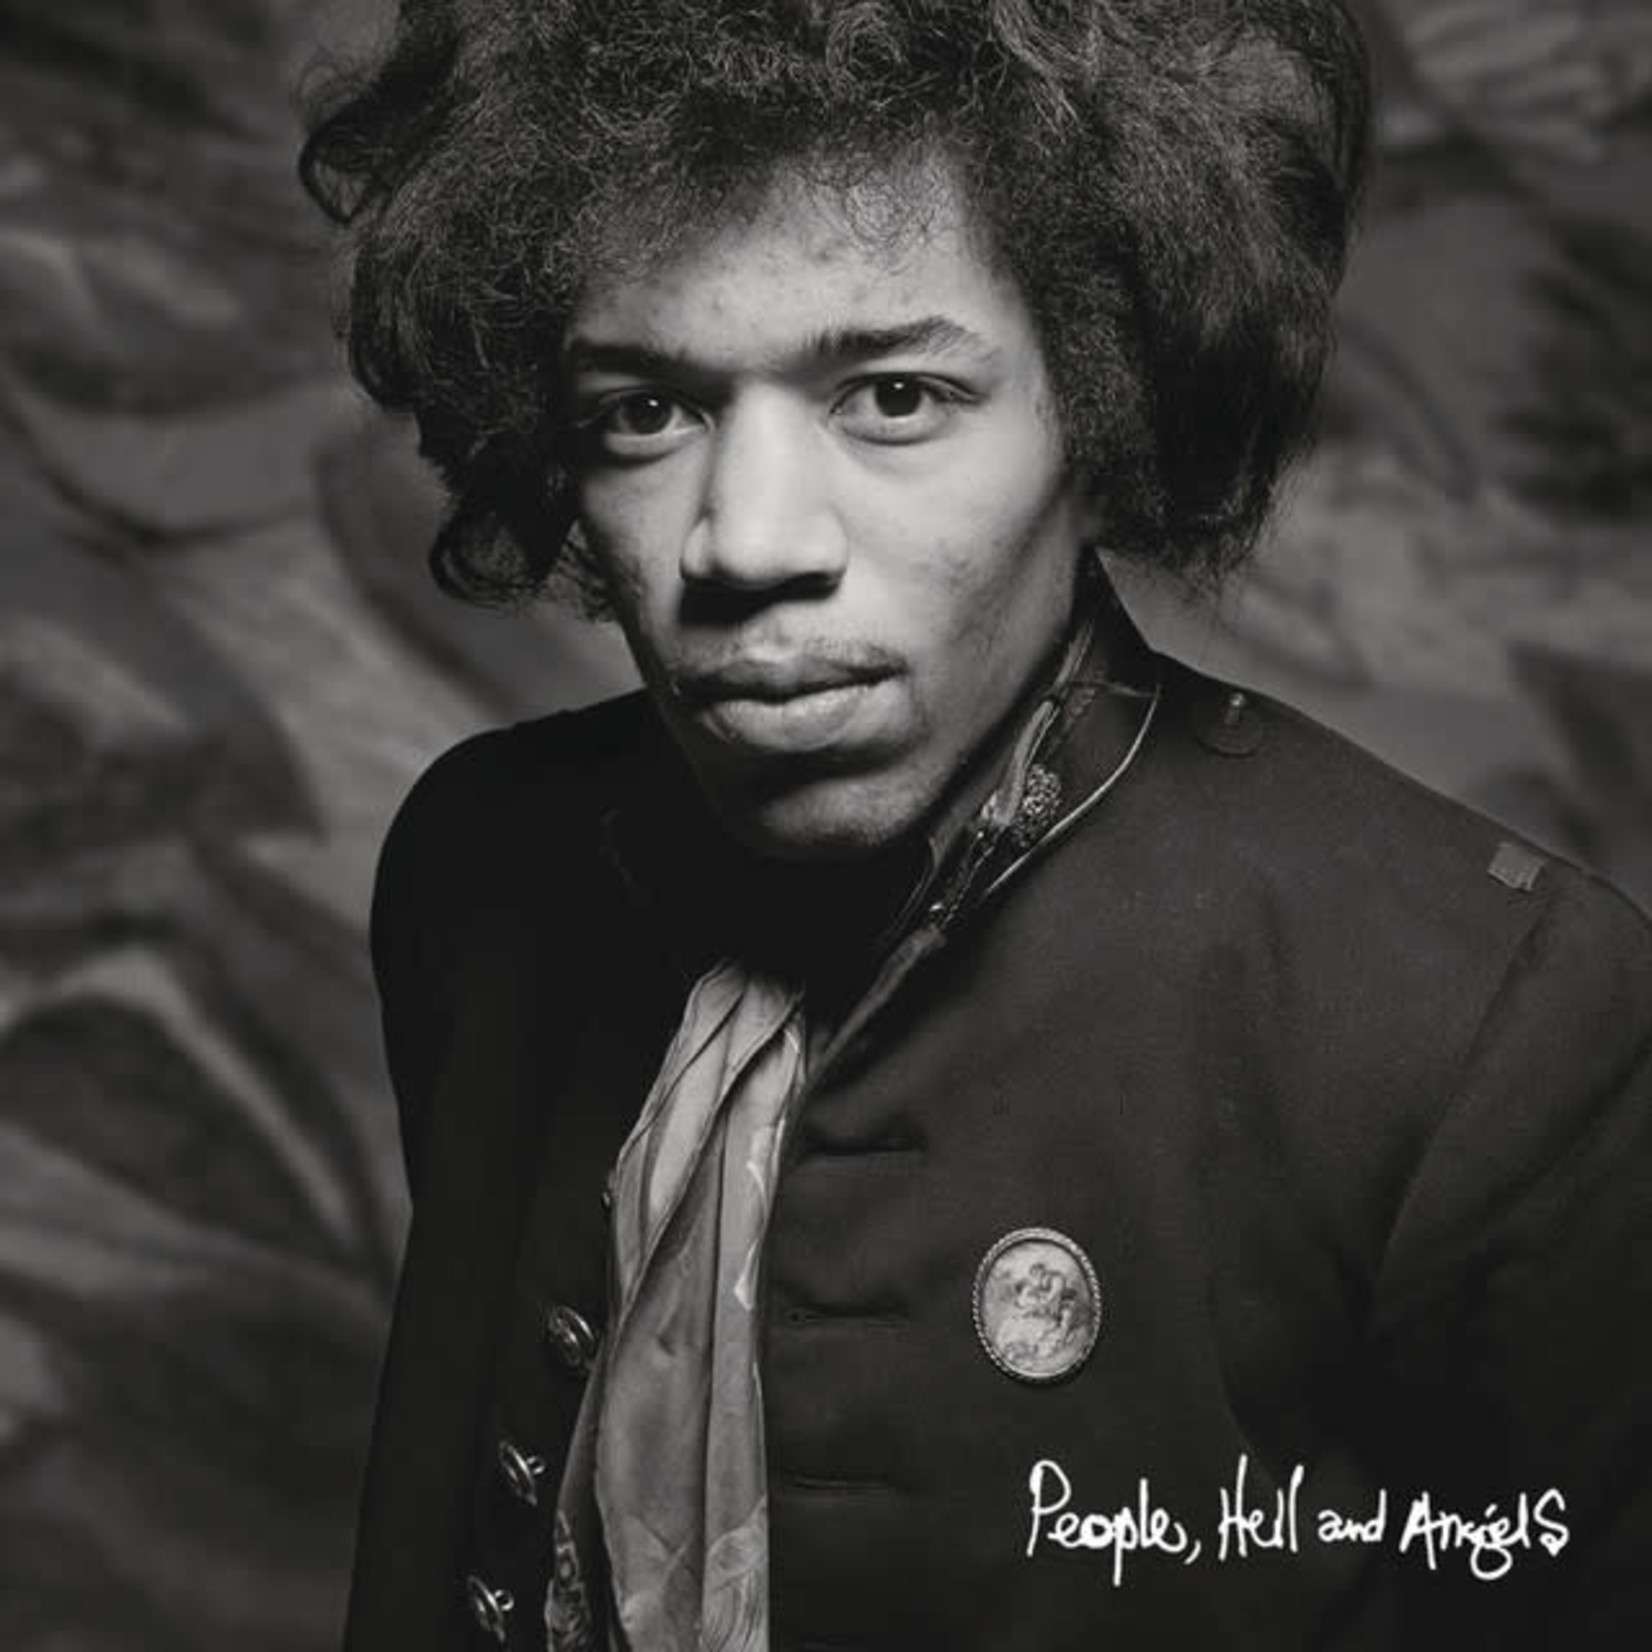 Compact Disc The Jimi Hendrix Experience -People, Hell and Angels  SACD